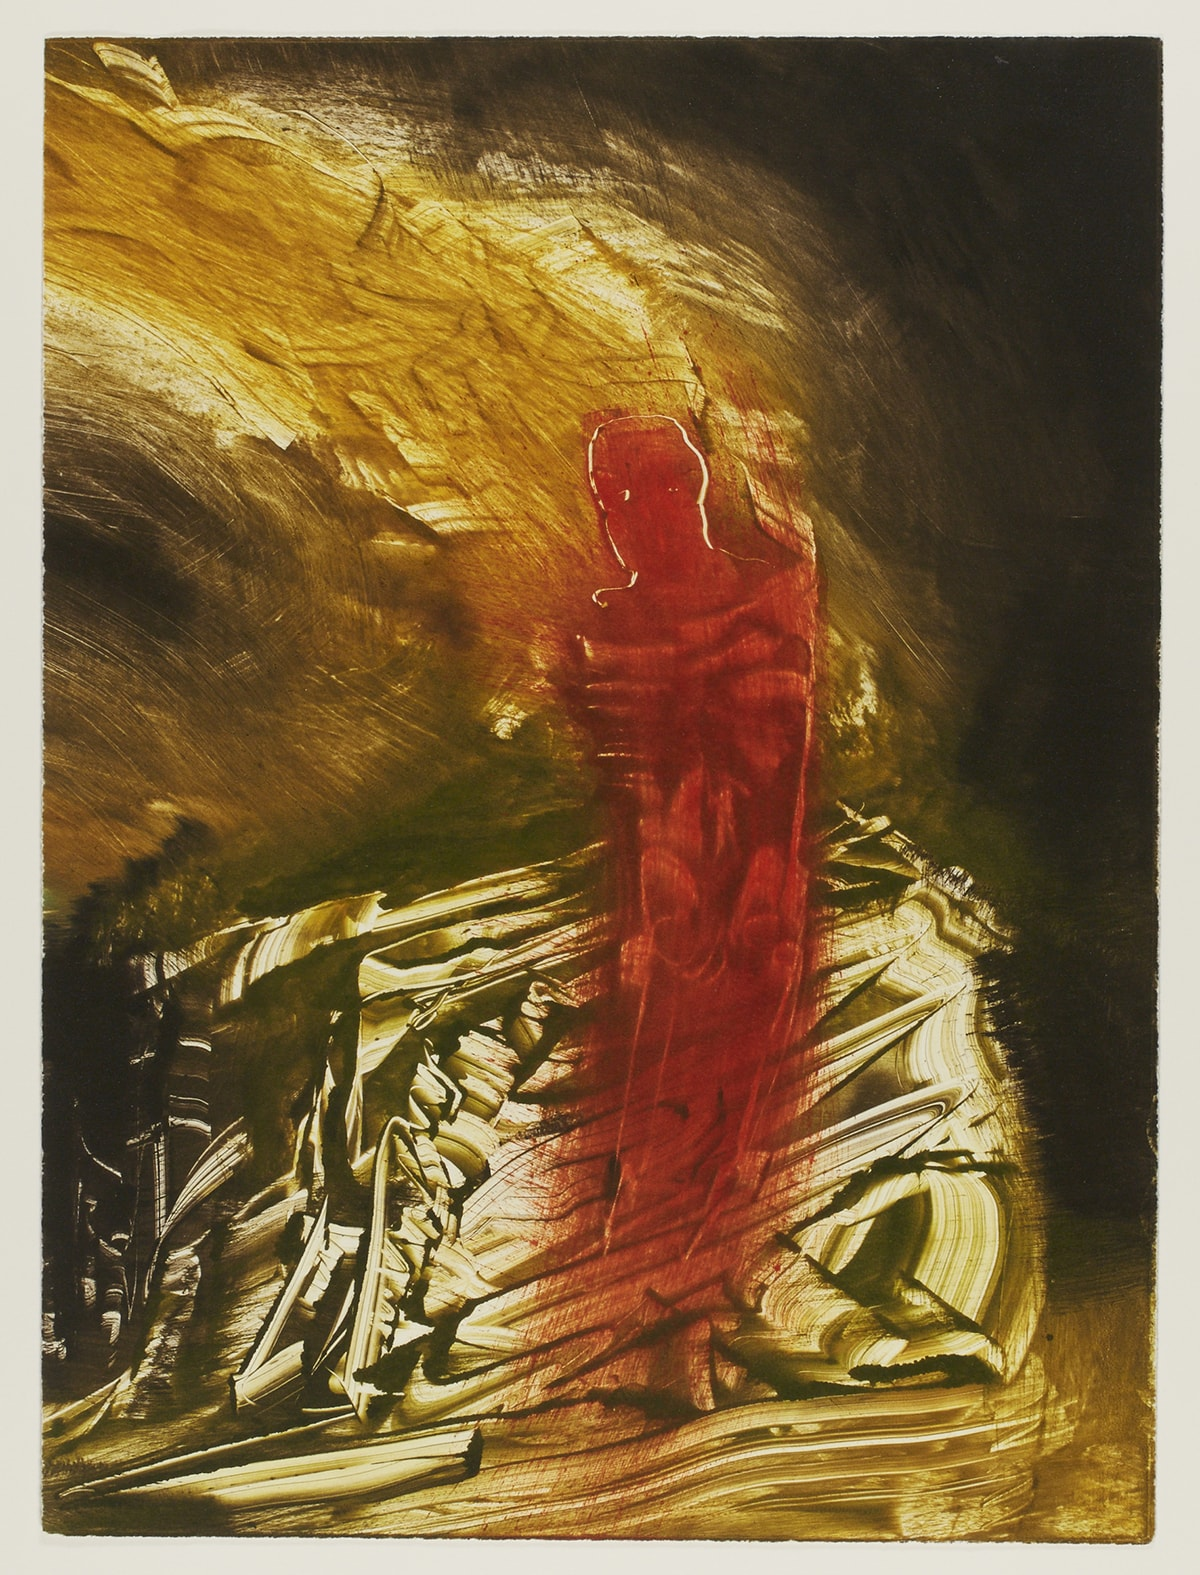 Mandatory, James Lavadour, 17 ¾ x 13 1/8, color monotype on paper. A vertical rectangular print showing a red, armless figure, just right of center, against a background of smudged, scraped and blended earth tones. The figure has the suggestion of a head, its outline incised in the paint revealing the cream-colored base below. The ribs, torso, pelvis, and the legs are covered in a sheer wash of the red color that fades away at the bottom along with the lower legs and feet of the figure. The red color arcs from the figure's head to the left becoming a muddier brown and continues off the work. The figure is placed on a background of earthy brown paint tones which look as if they have been scraped, moved, and manipulated by palette knives and brushes. The effect is sharper, harsher, and darker at the bottom of the monotype and more blended, softer, and lighter at the top half. The right edge of the print from top right to lower right darkens to very deep brownish black.